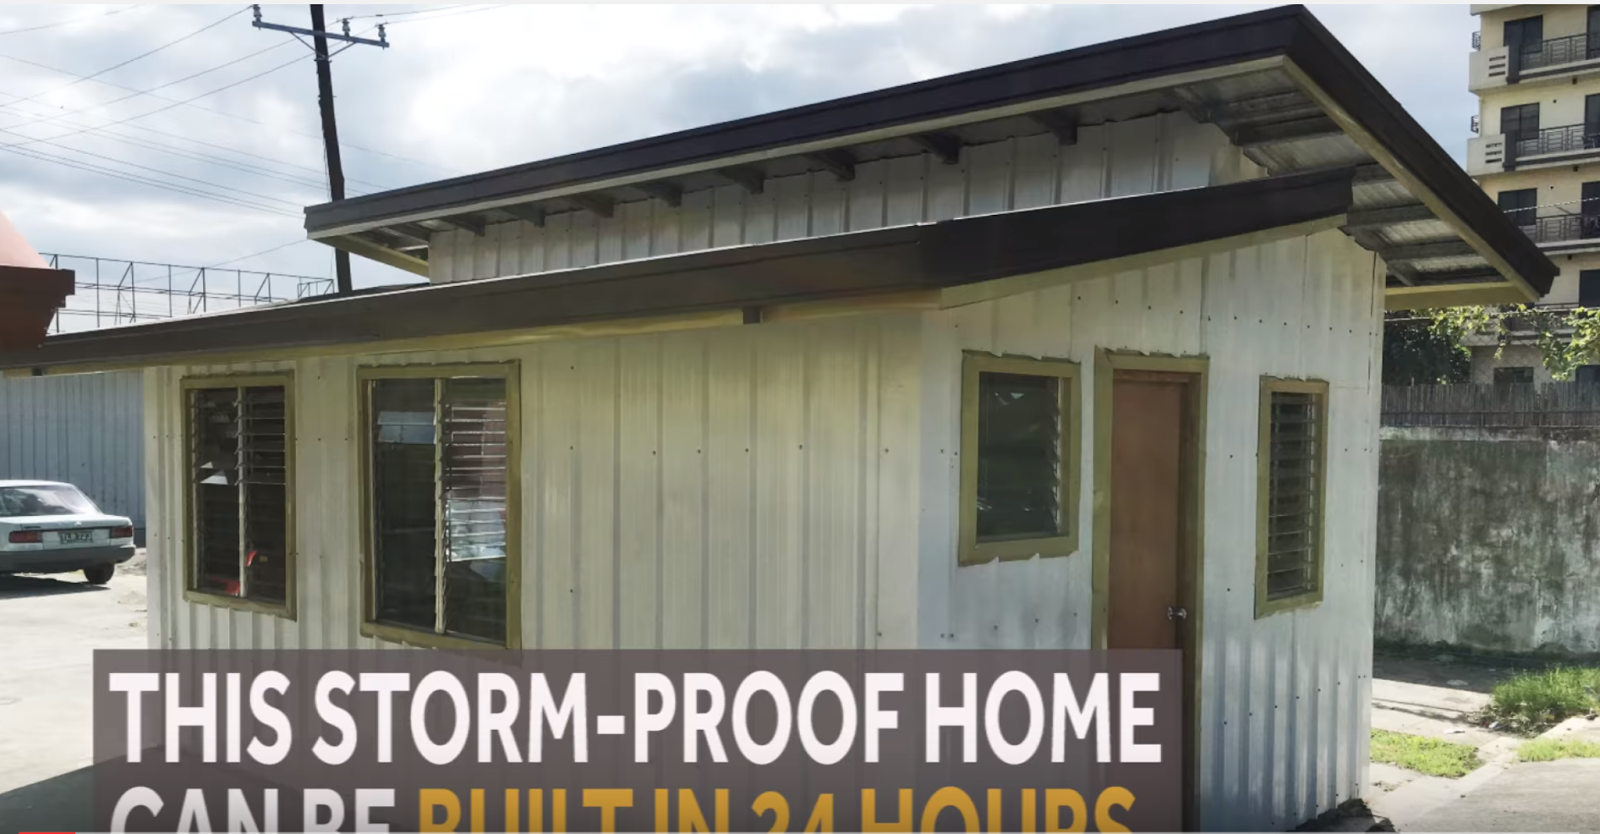 For sale bahay tibay php145 000 storm proof house in for Hurricane proof home designs